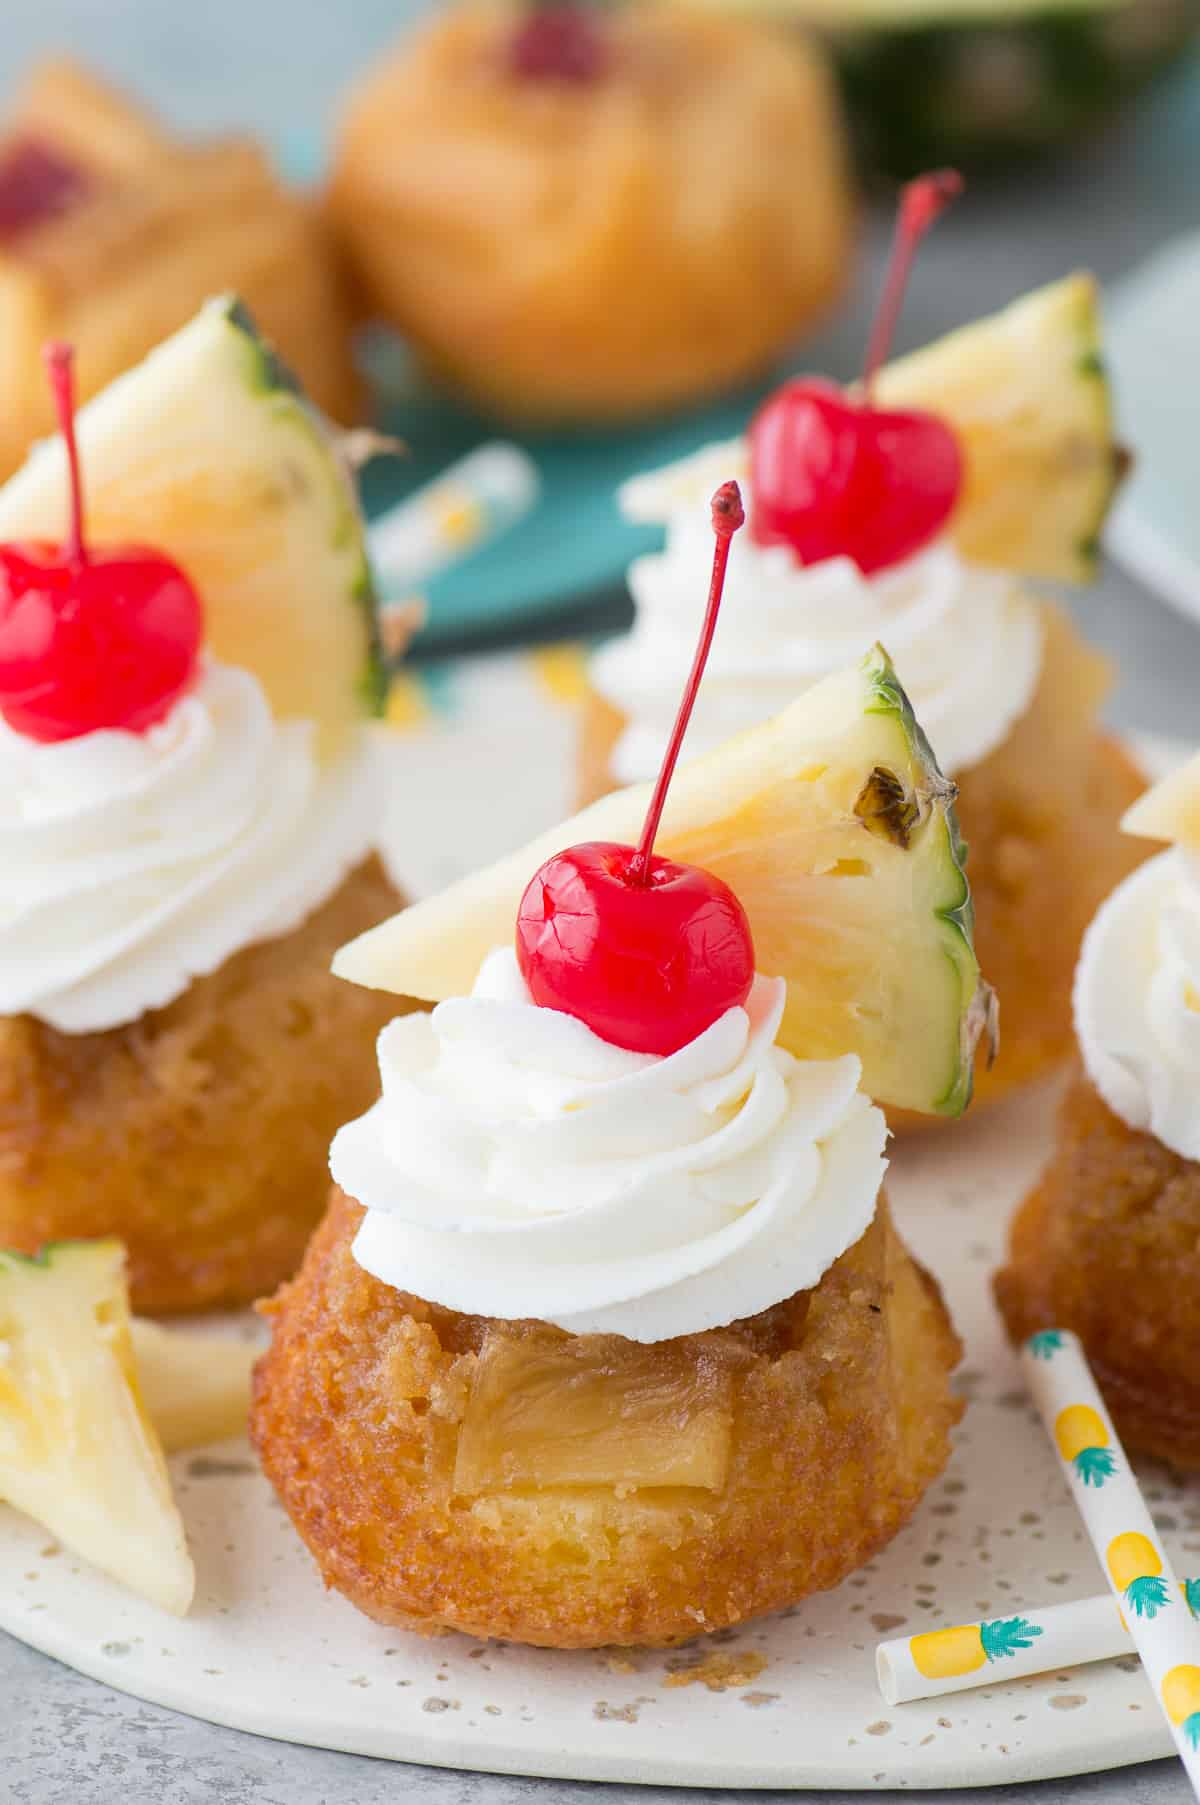 The BEST 7 ingredient mini pineapple upside down cakes! The cakes are so moist and I LOVE the presentation with the garnishes!